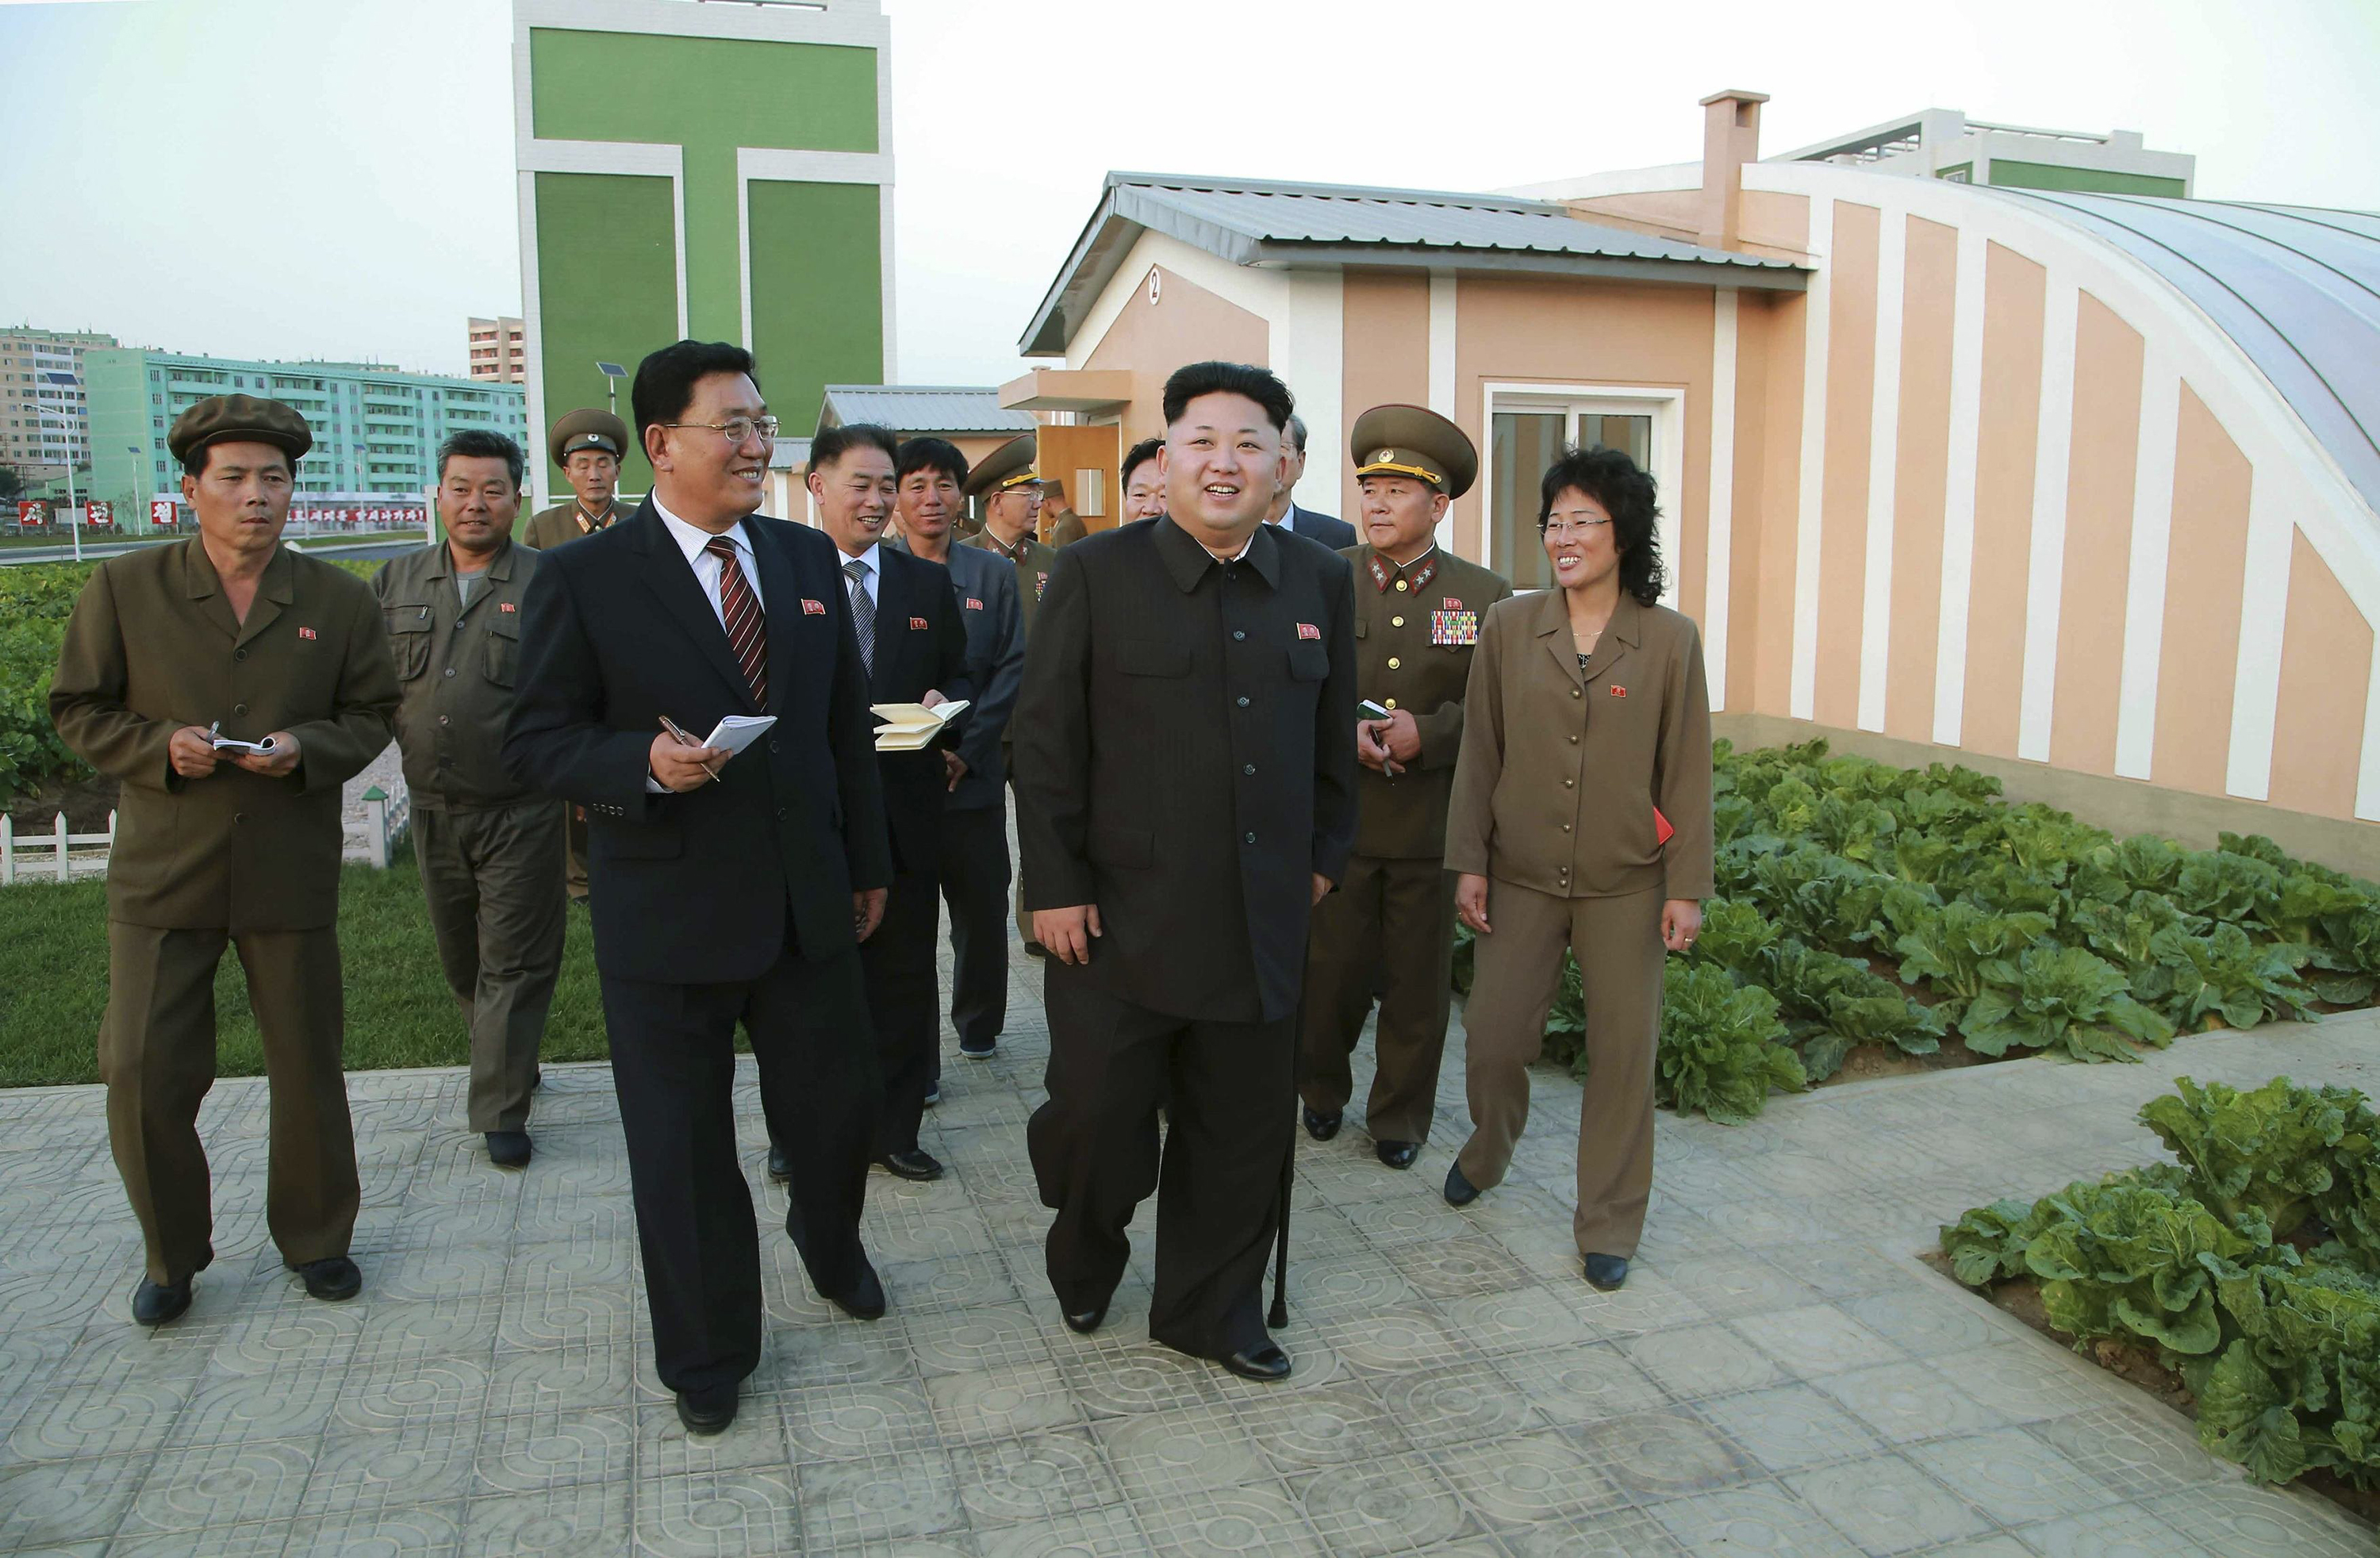 North Korean leader Kim Jong Un gives field guidance at the newly built Wisong Scientists Residential District in this undated photo in Pyongyang, released on Oct. 14, 2014.